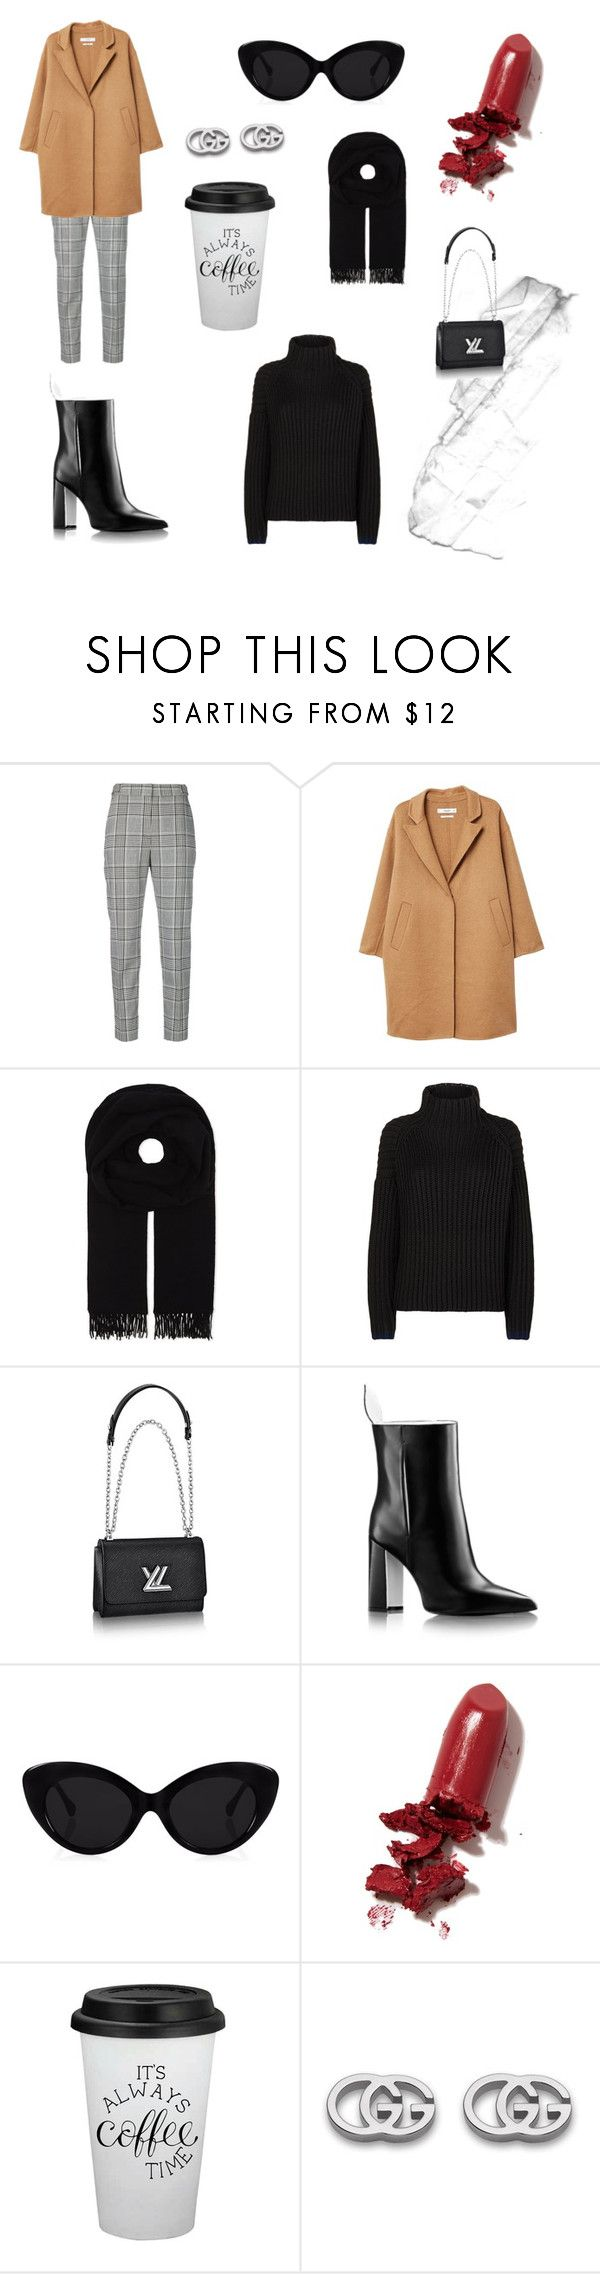 """""""Untitled #69"""" by pilvihelen on Polyvore featuring Alexander Wang, MANGO, Canada Goose, Victoria, Victoria Beckham, Louis Vuitton, LAQA & Co. and Gucci"""